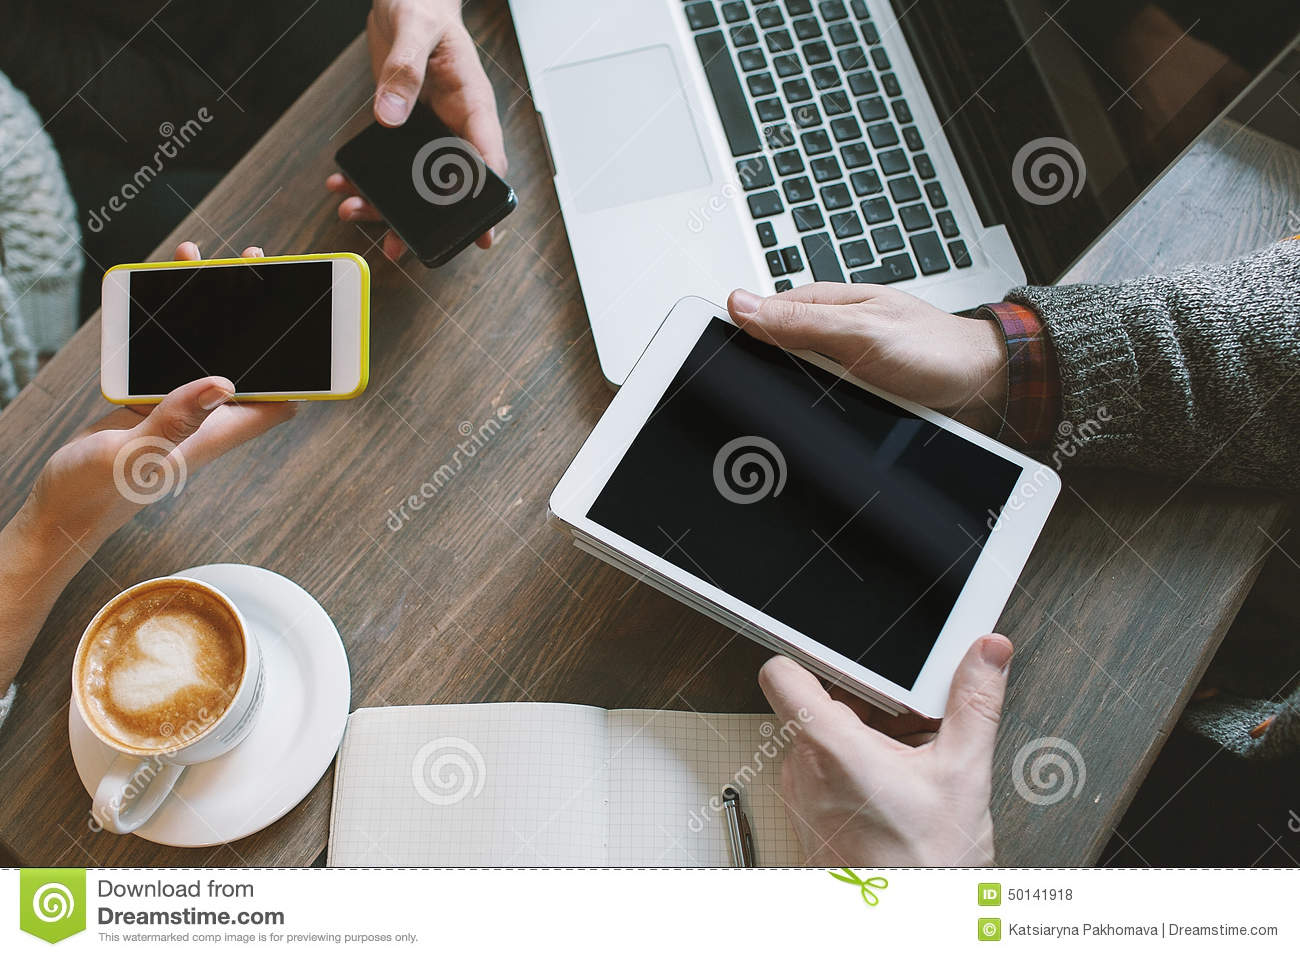 hands with smartphones, tablet over table with laptop and coffee